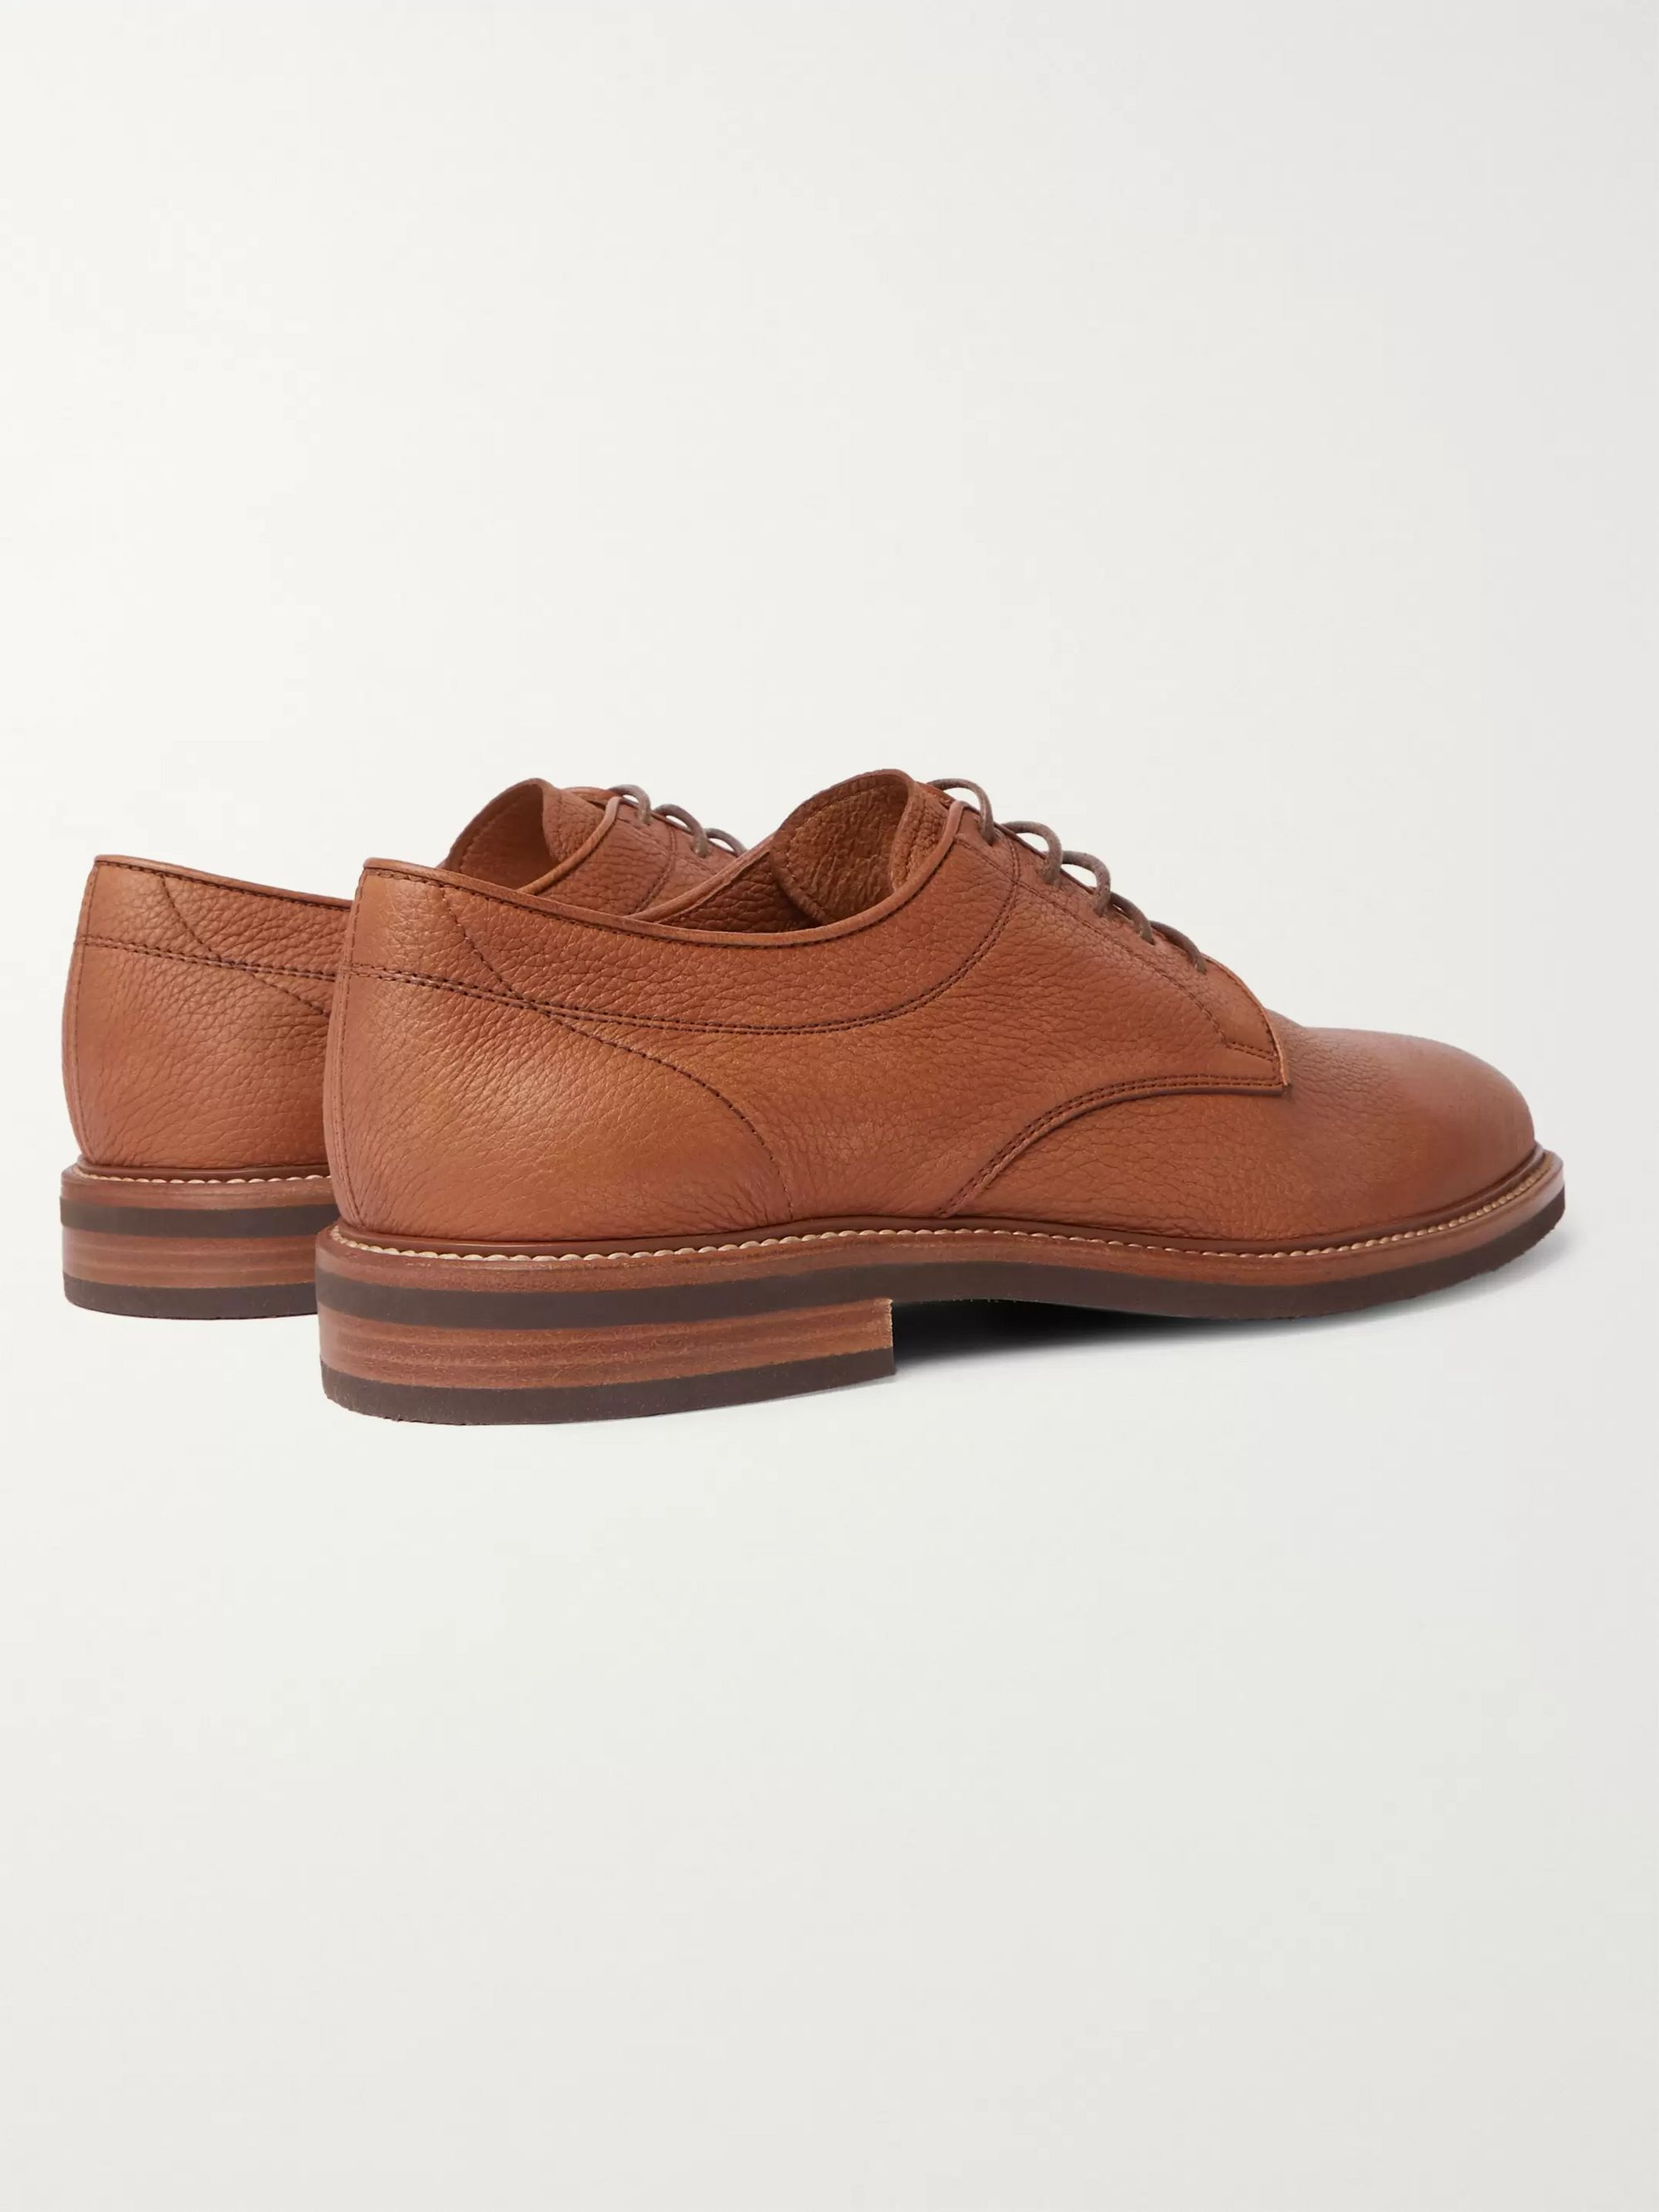 Brunello Cucinelli Pebble-Grain Leather Derby Shoes